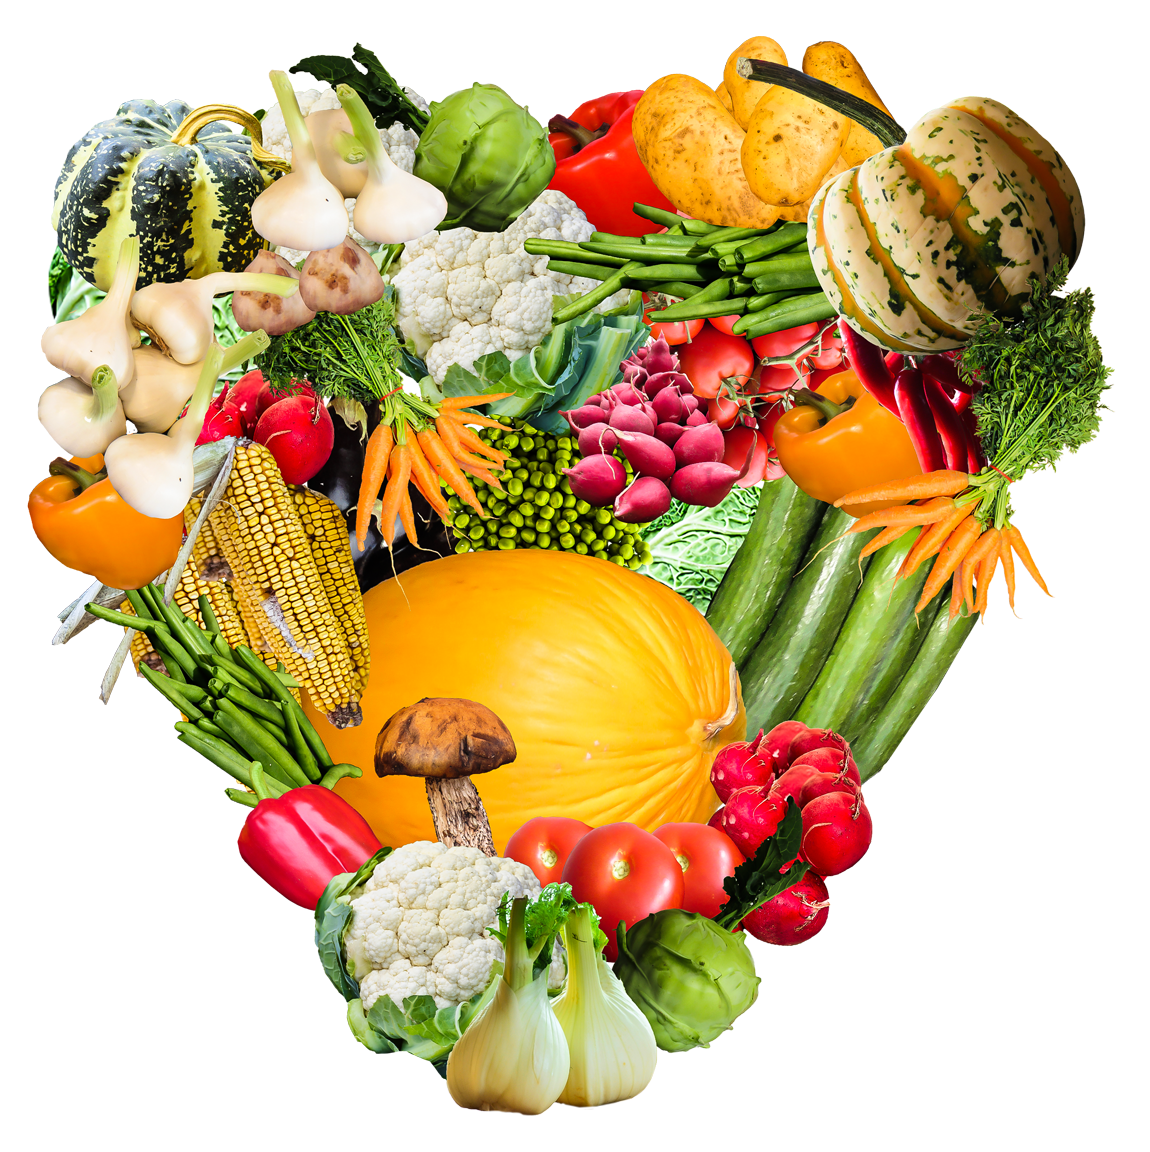 Heart Vegetables PNG Transparent Image - Vegetable PNG